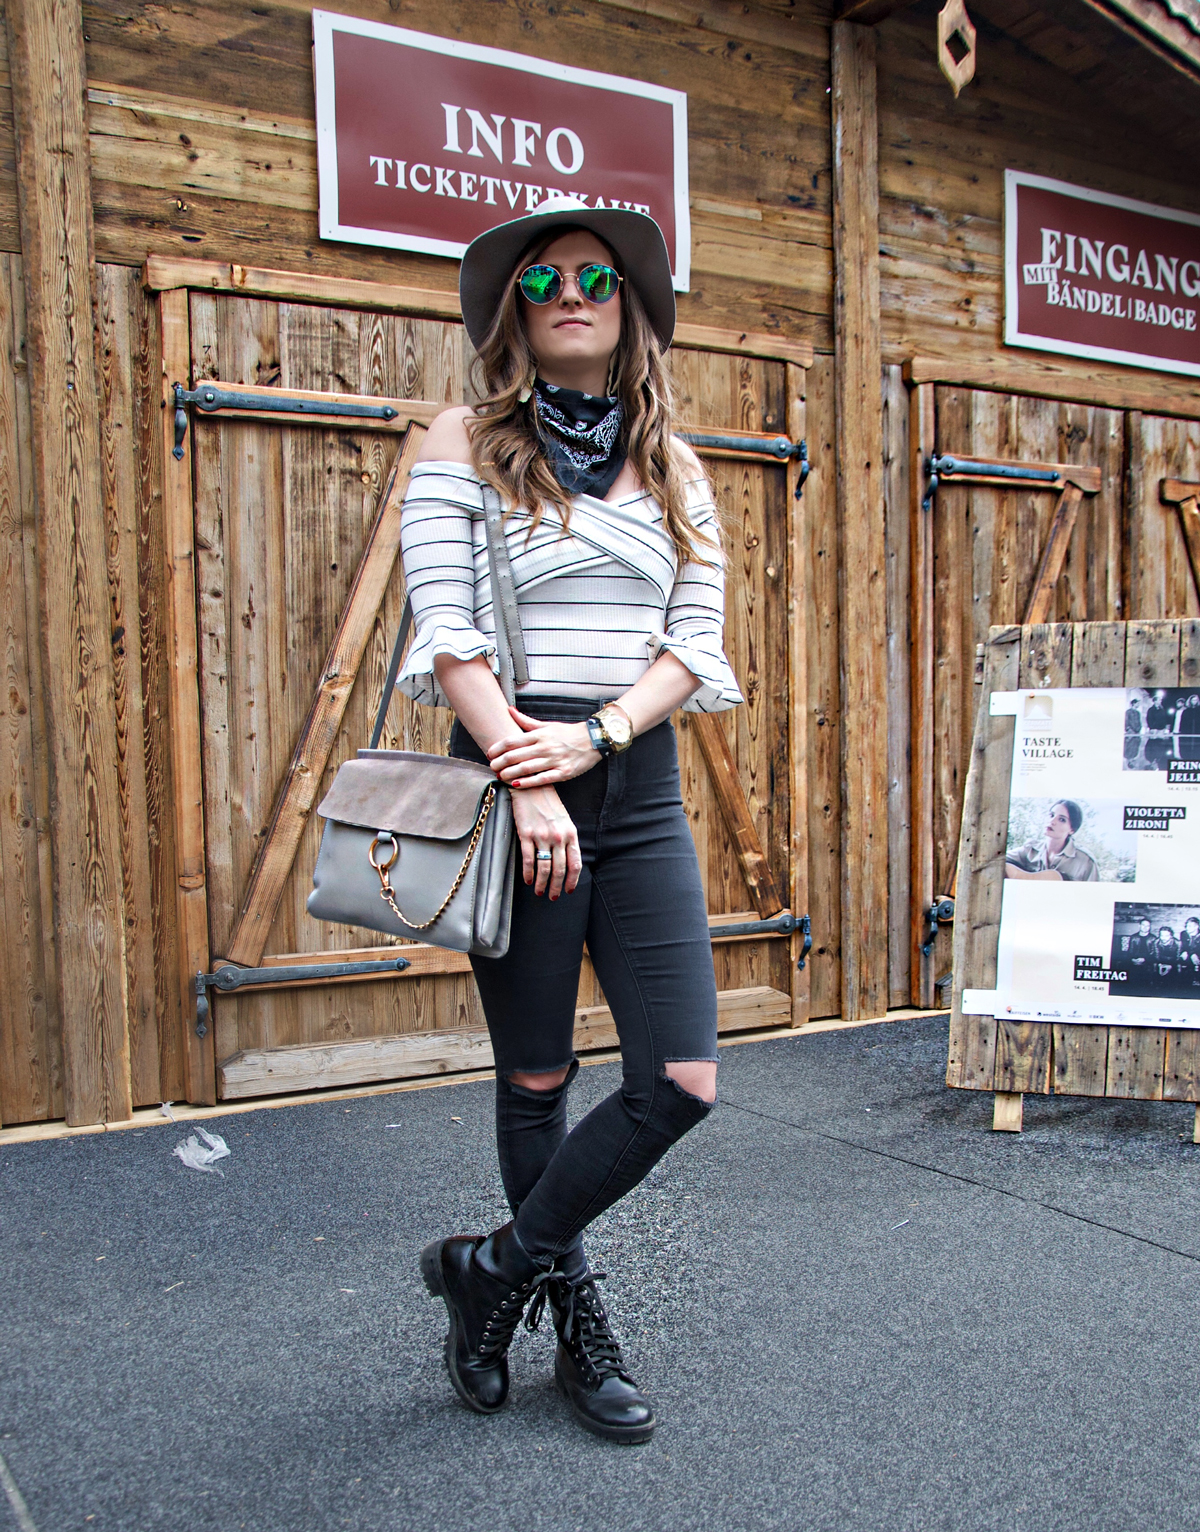 Andrea Steiner is a fashion blogger from Lucerne in Switzerland. On her blog Strawberries 'n' Champagne, she shows a festival Look for the Zermatt Unplugged Event. She is wearing black skinny pants by topshop, a shoulder off shirt by shein.com and a hat an d sunglasses by H&M.